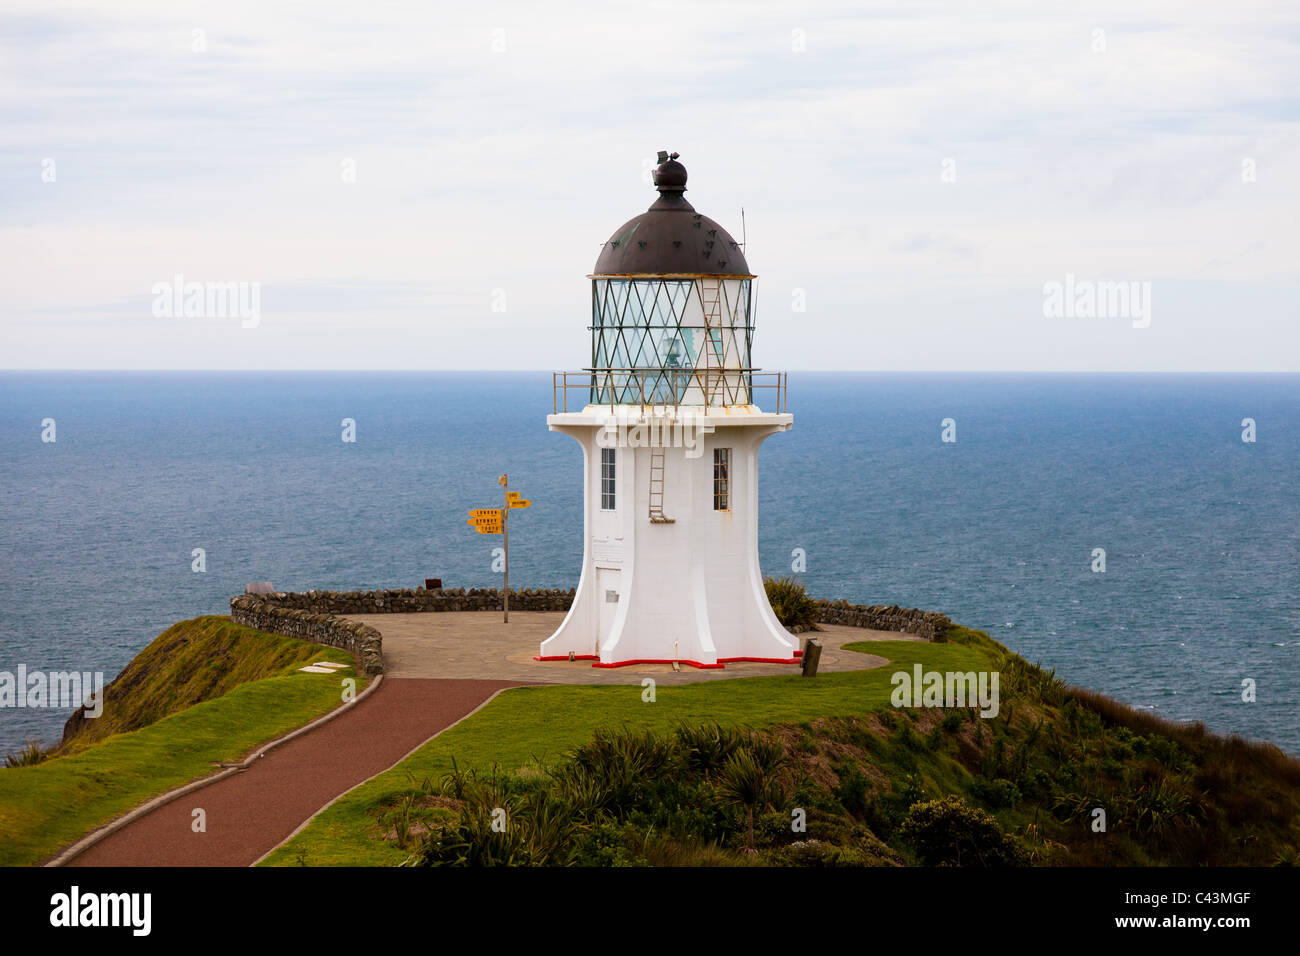 The lighthouse at Cape Reinga, the northest point of New Zealand on the Aupouri peninsula - Stock Image